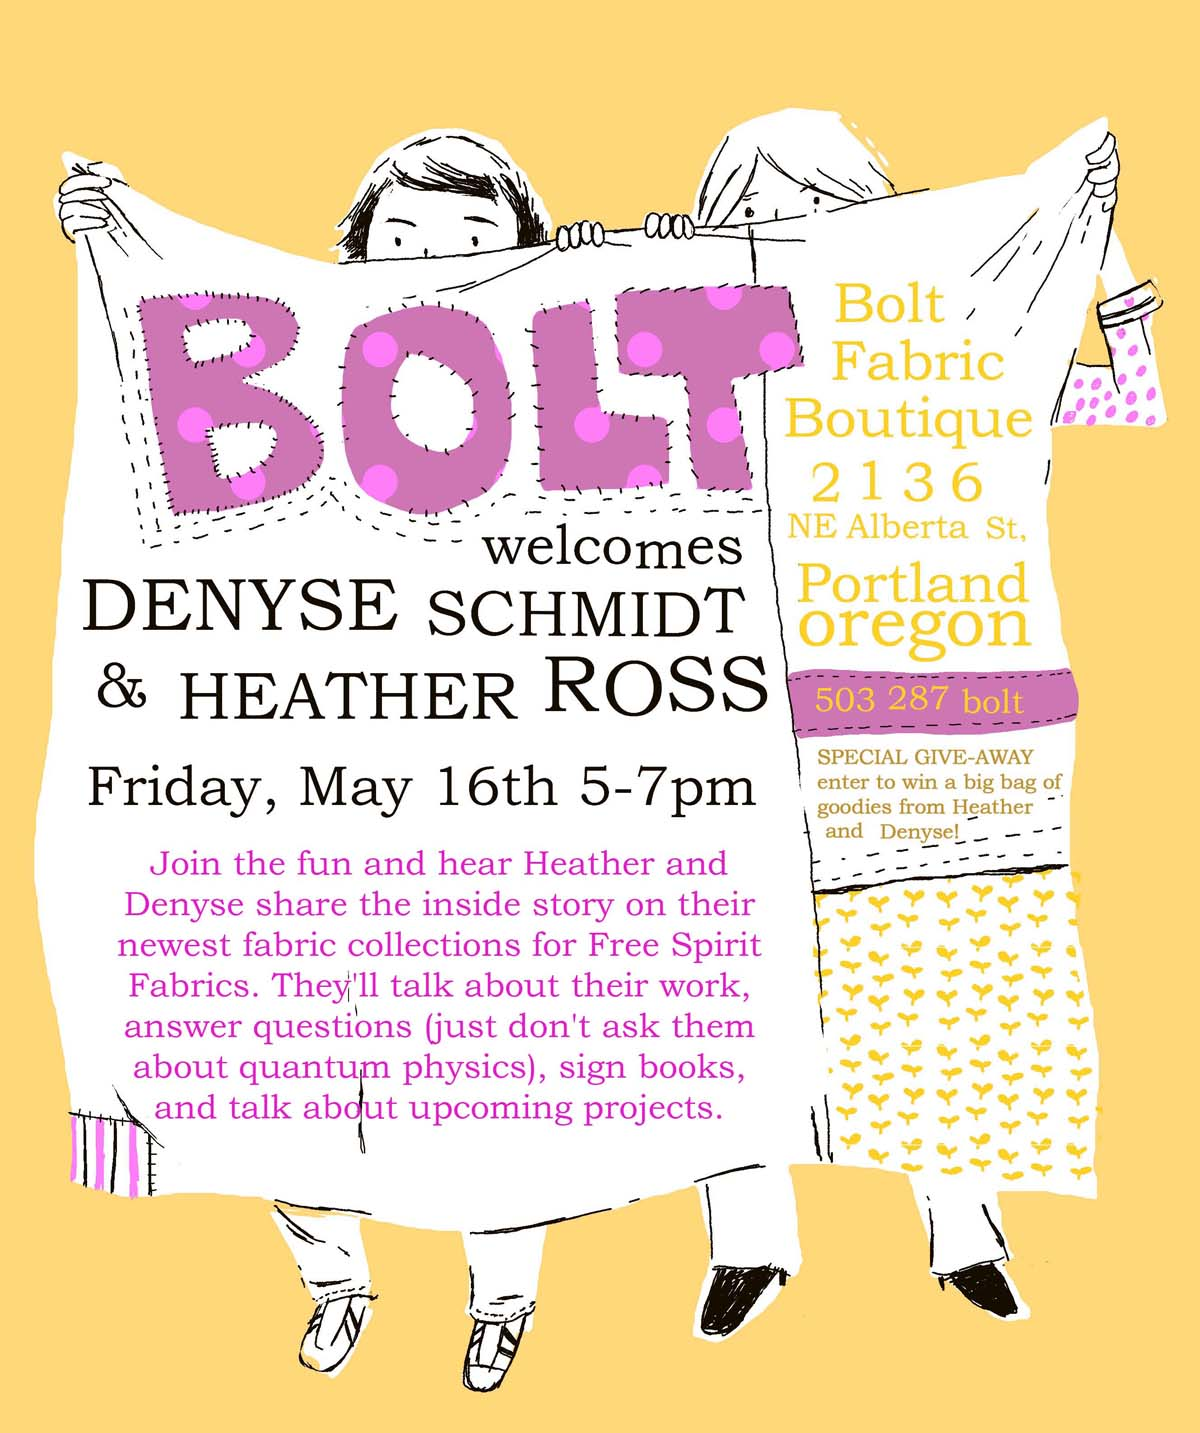 heather ross and denyse schmidt at bolt